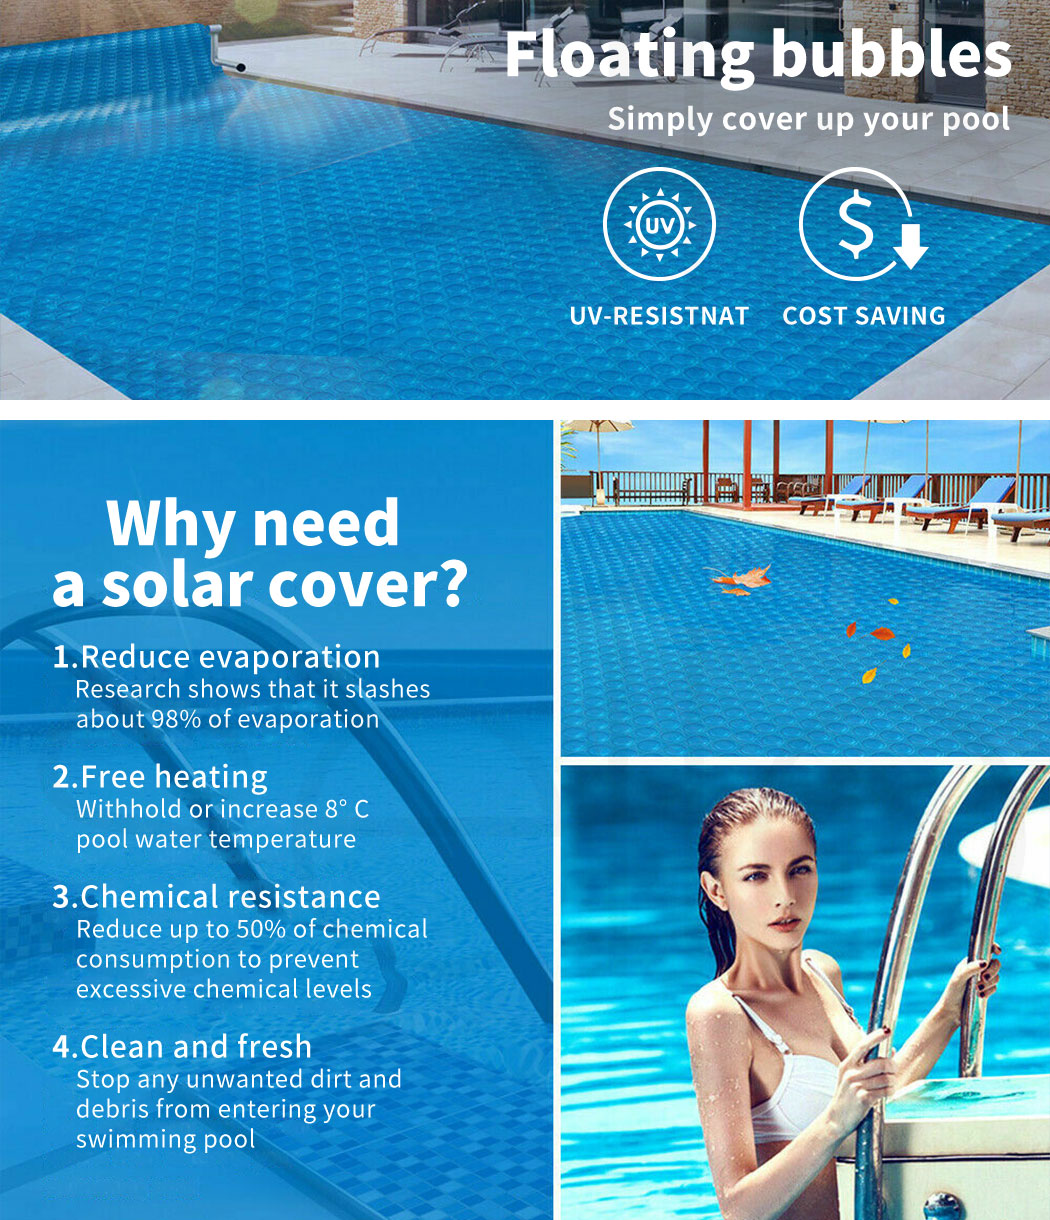 Solar-Swimming-Pool-Cover-400-500-Micron-Outdoor-Bubble-Blanket-Covers-7-Sizes thumbnail 60